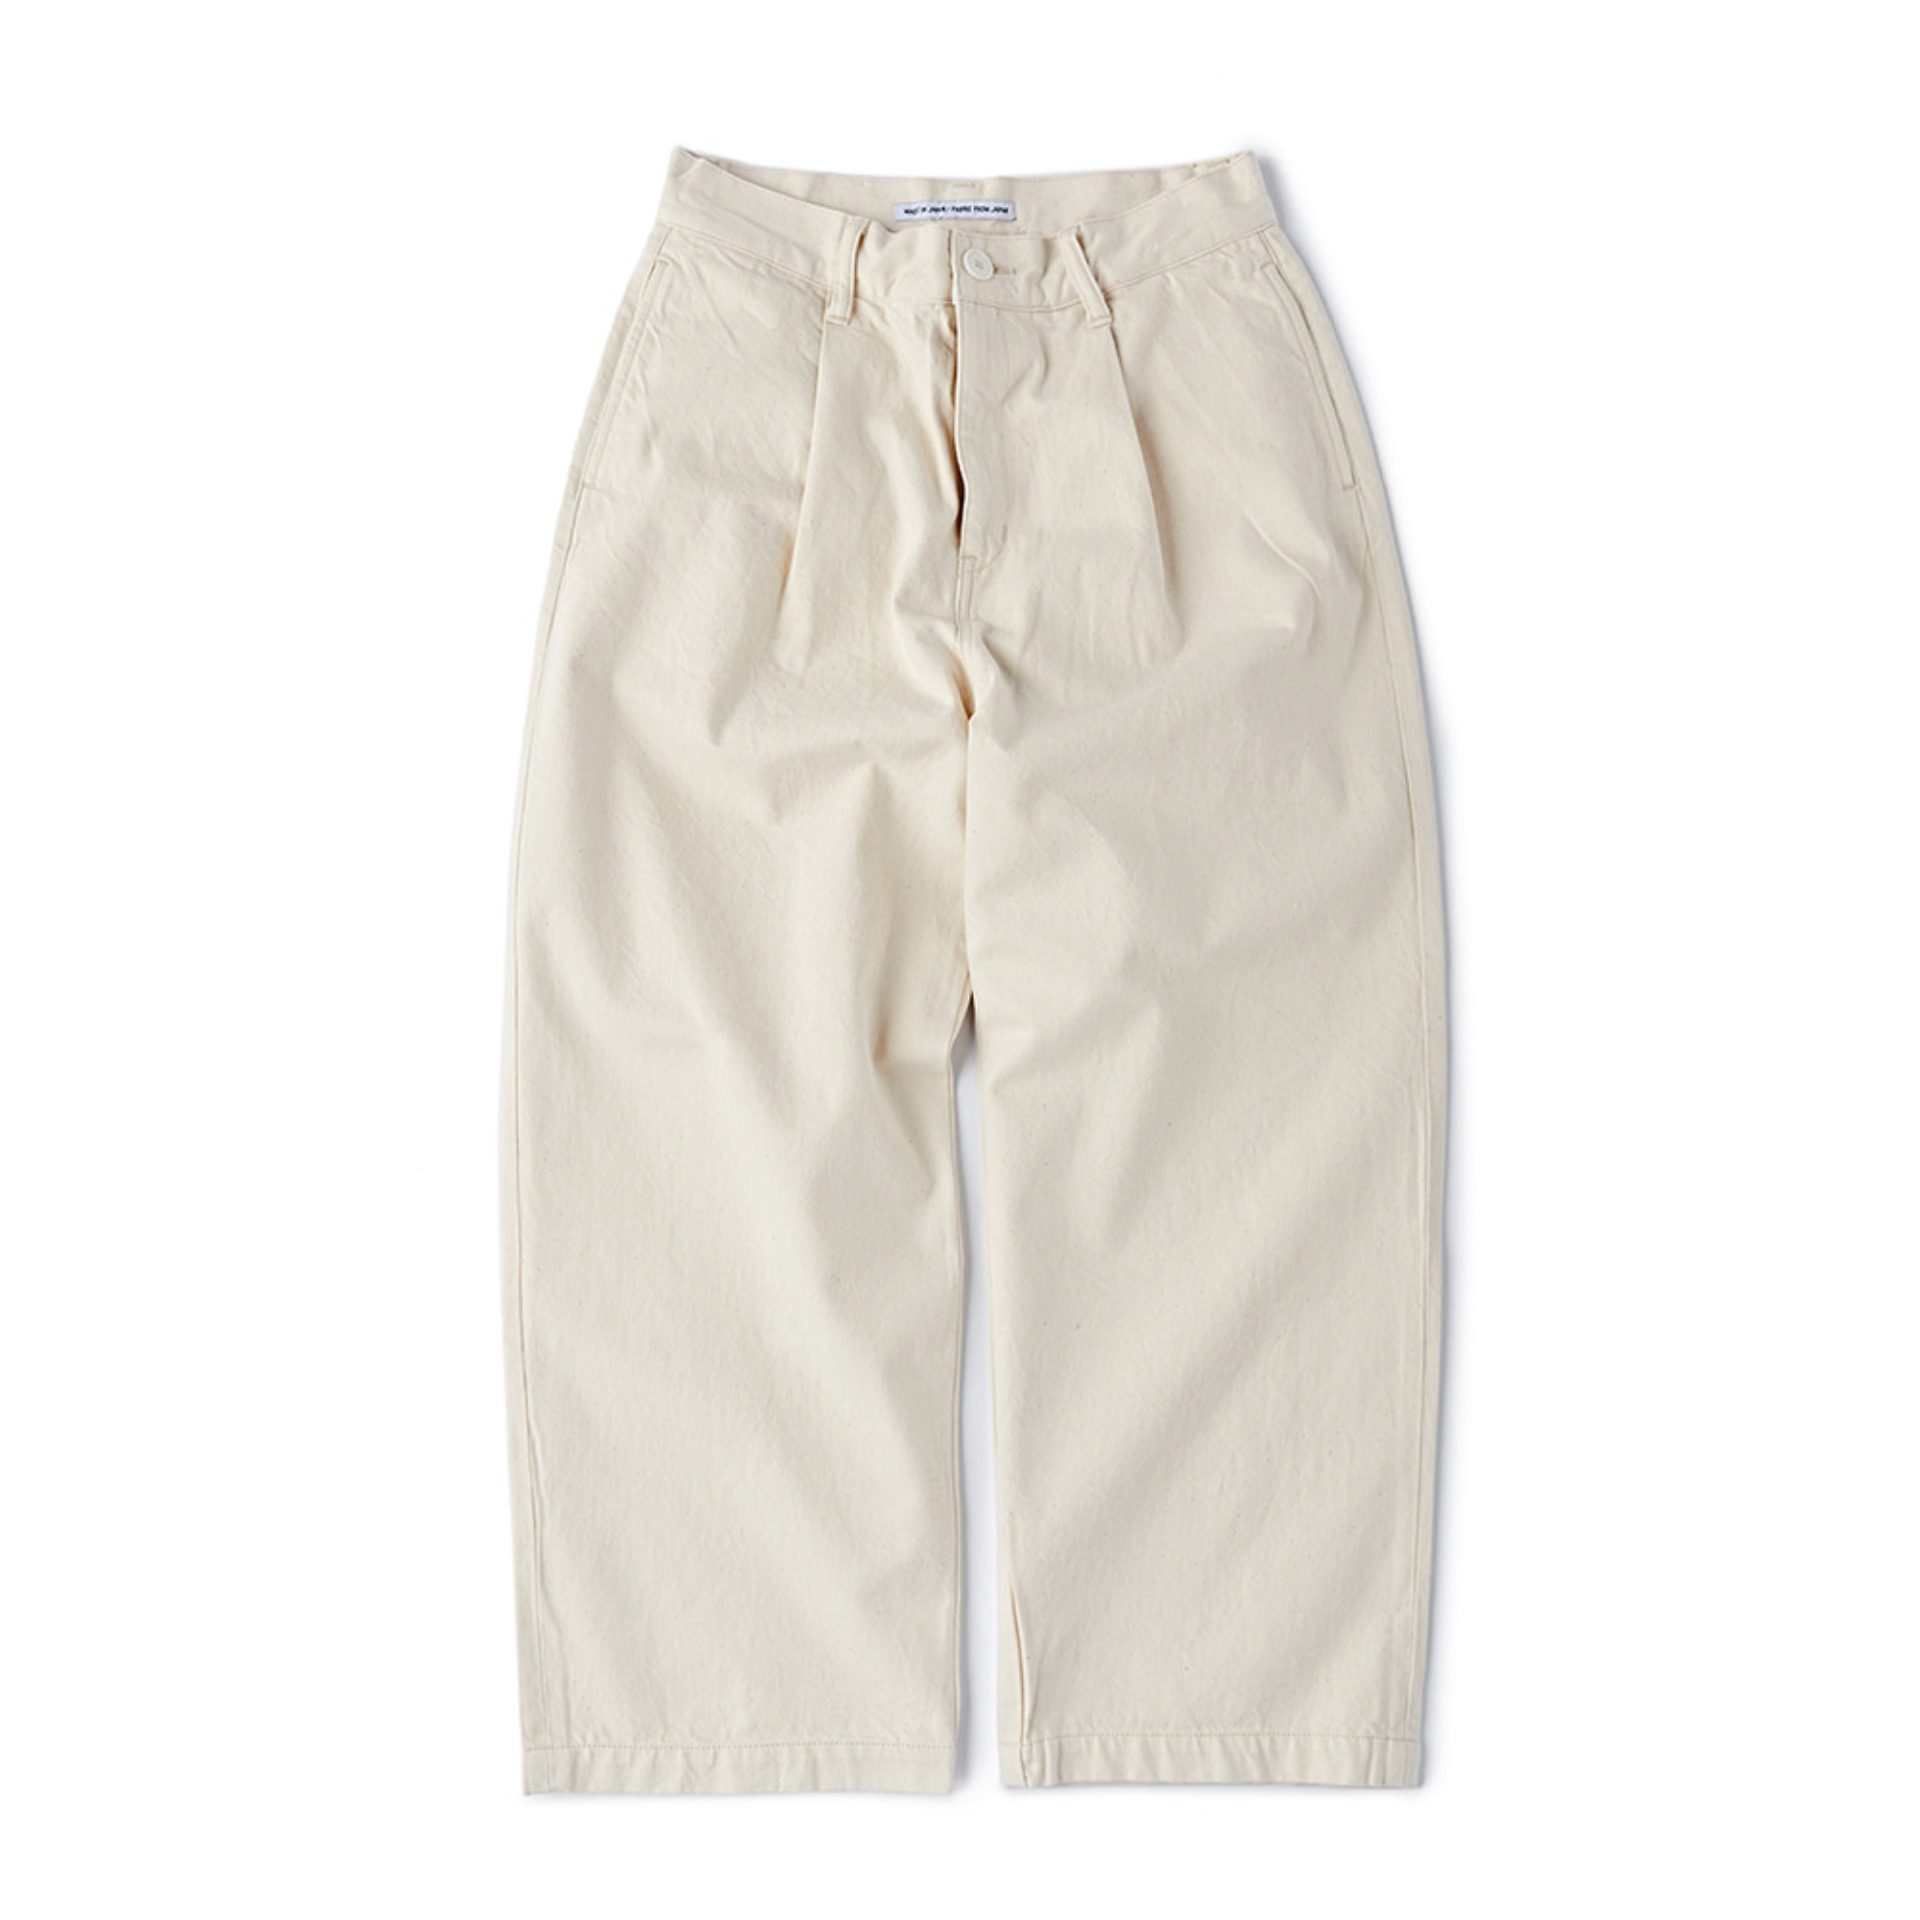 CWETP-001 Easy Tuck Pants(Regular Straight - ECRU)